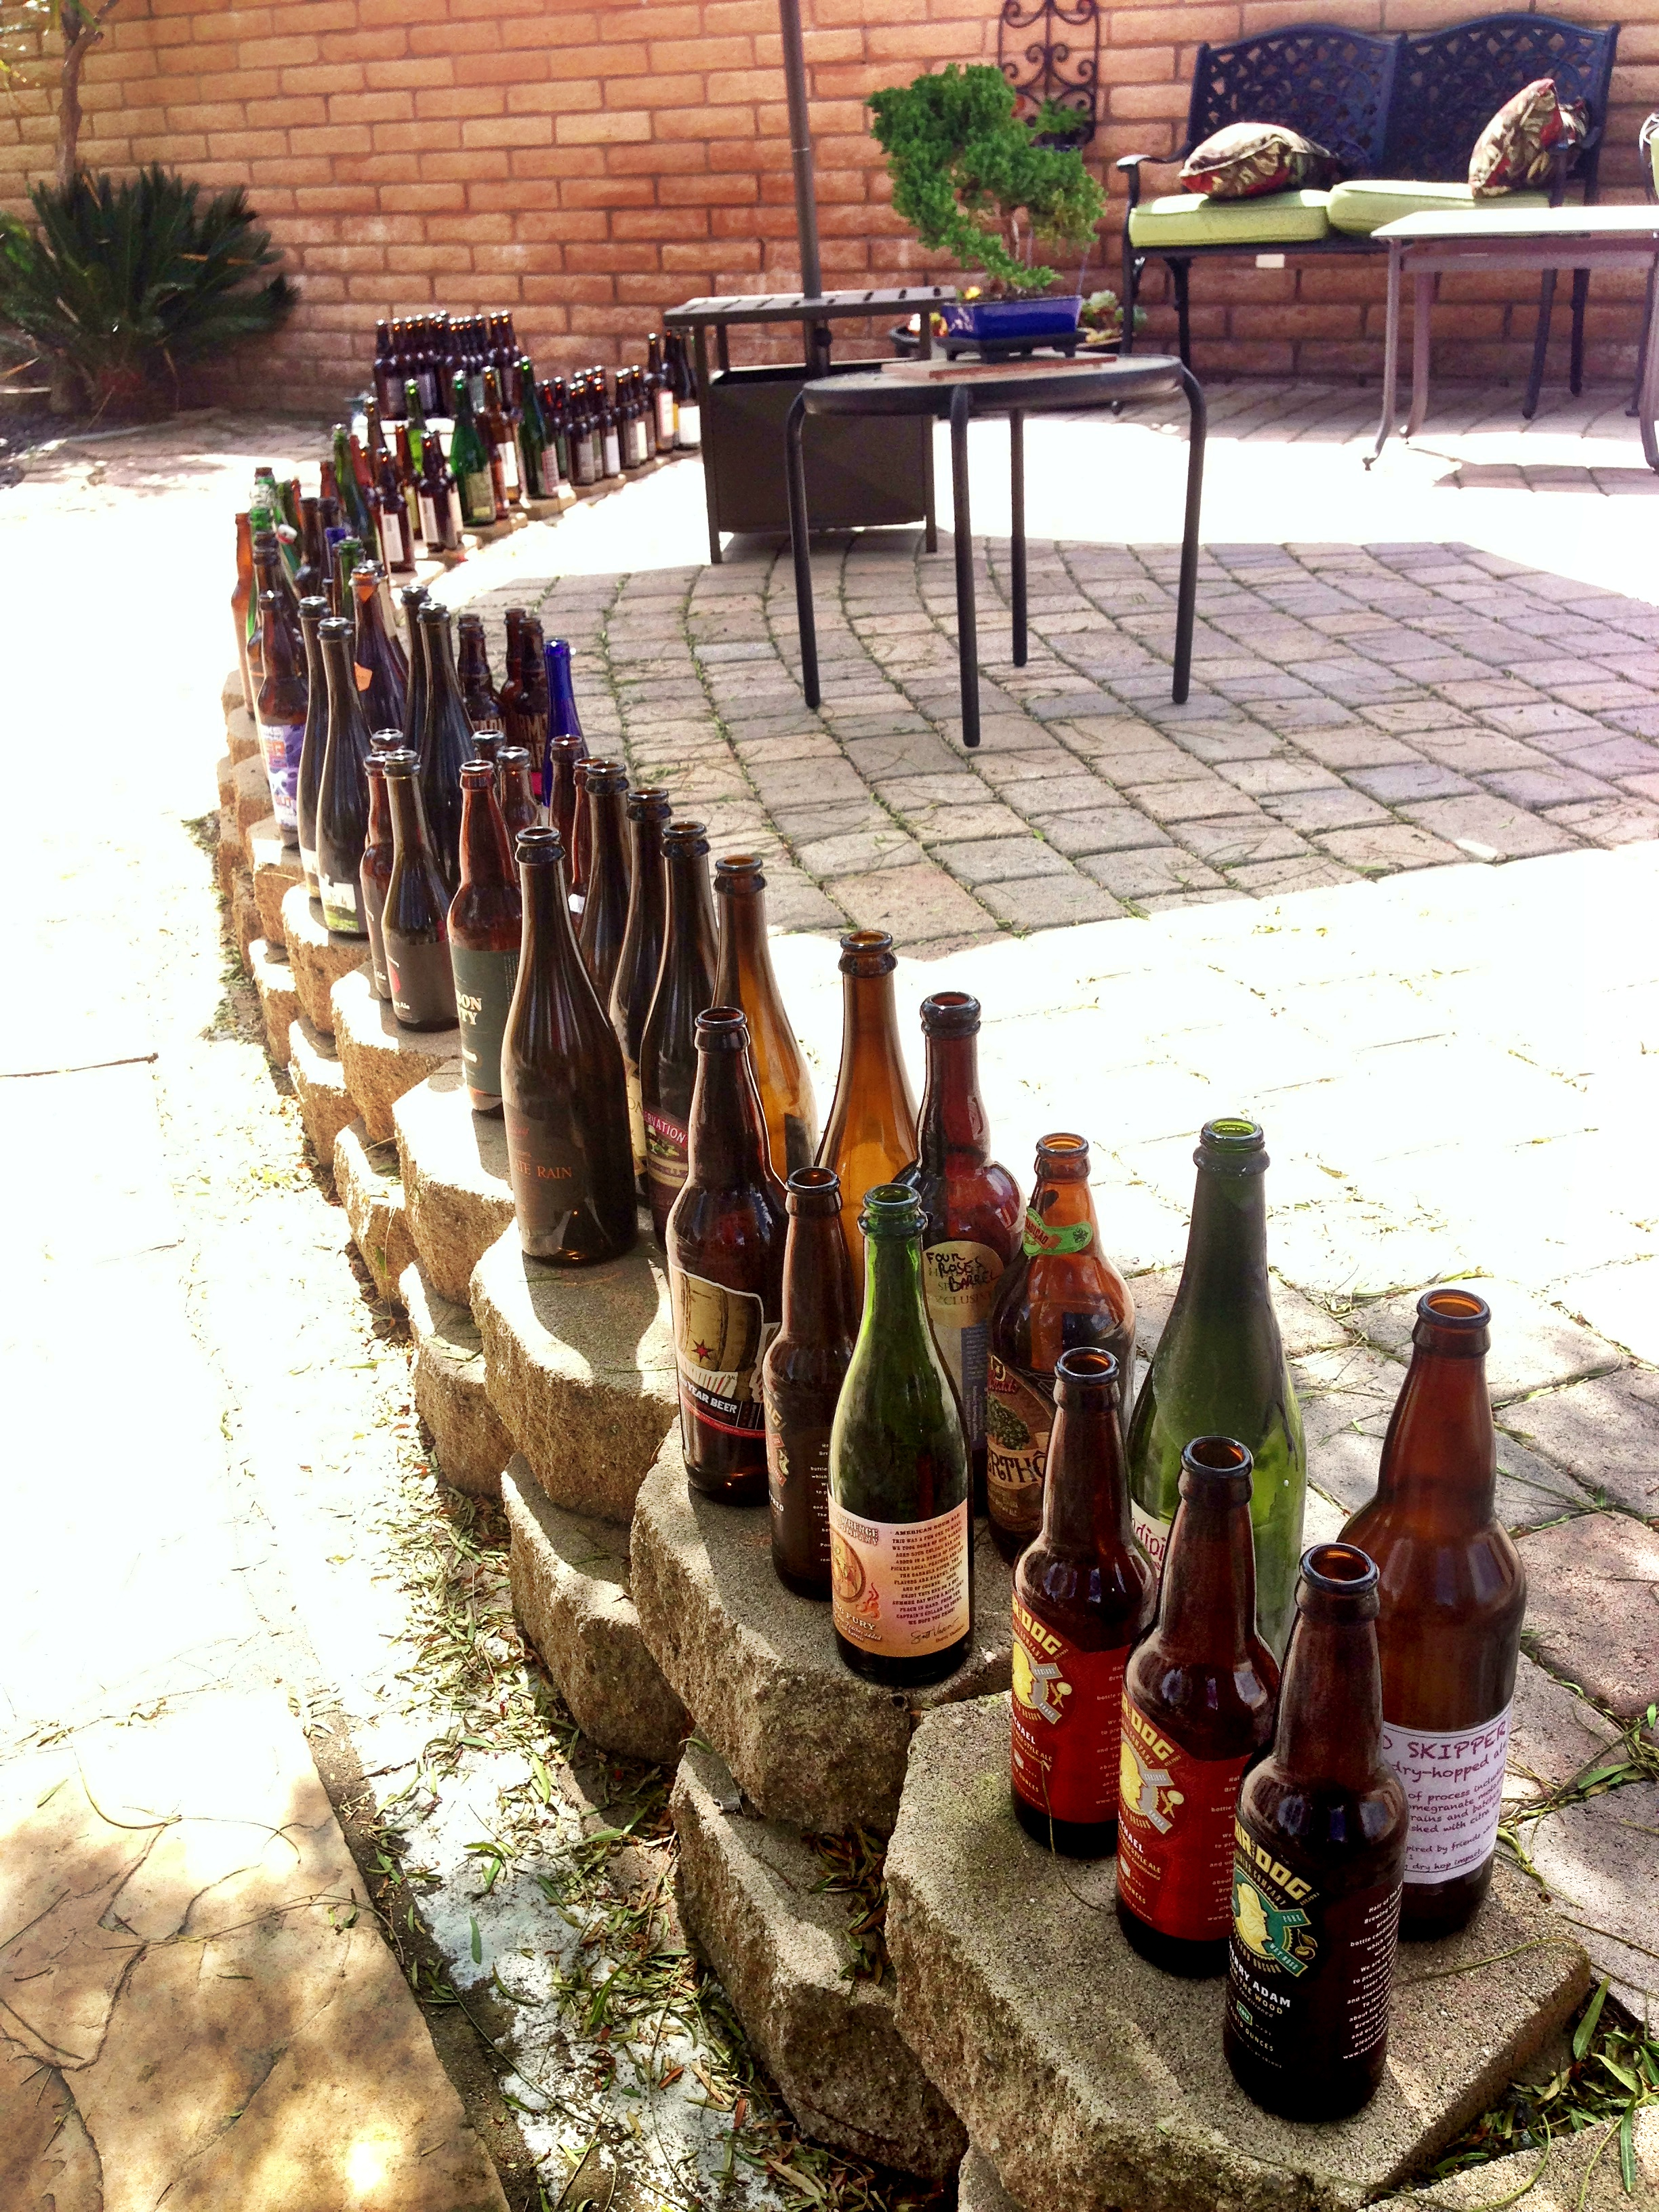 The epic San Diego bottle share